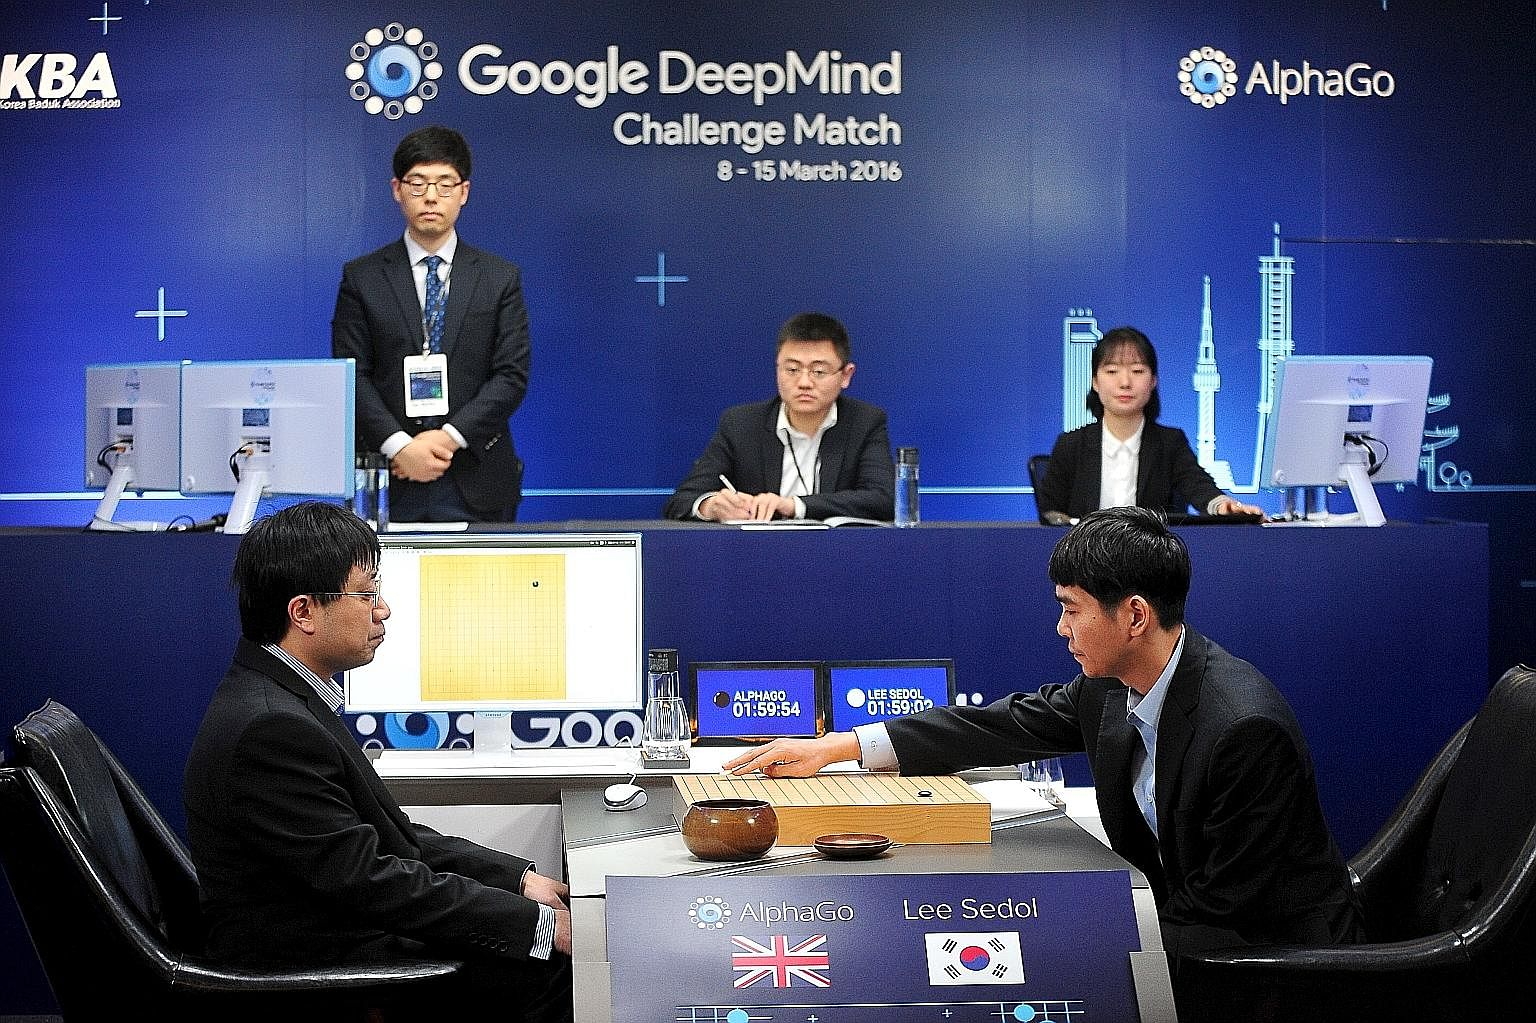 Mr Lee, the world's top Go player, taking on the AlphaGo program as Google DeepMind's lead programmer Aja Huang (far left) looked on during the Google DeepMind Challenge Match in Seoul, South Korea, earlier this month.